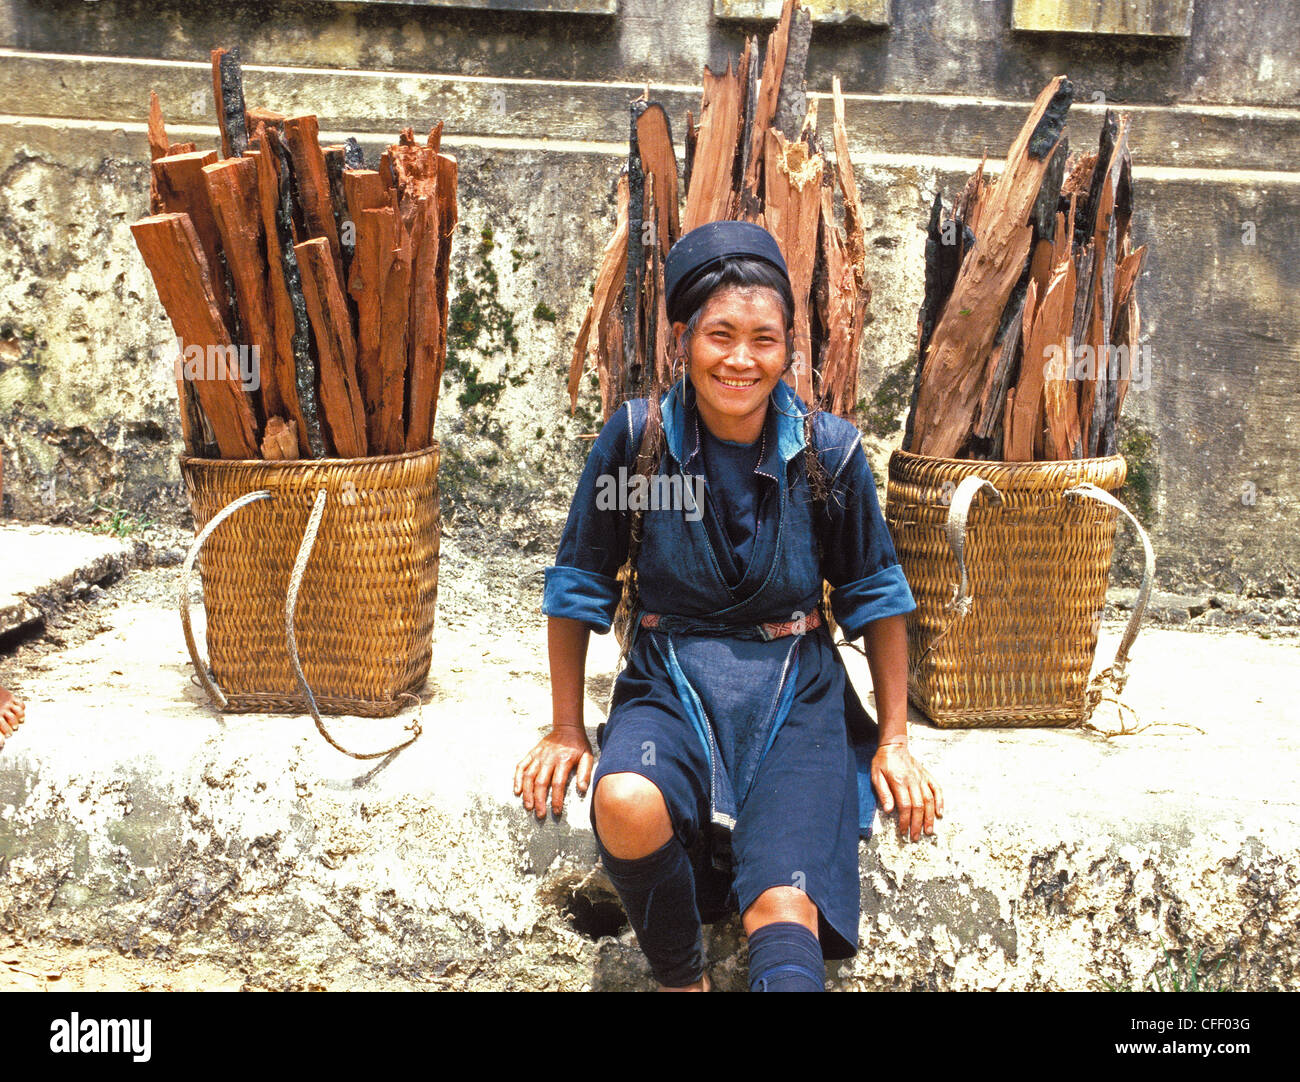 Hmong woman in Sapa region, North Vietnam, Vietnam, Indochina, Southeast Asia, Asia - Stock Image